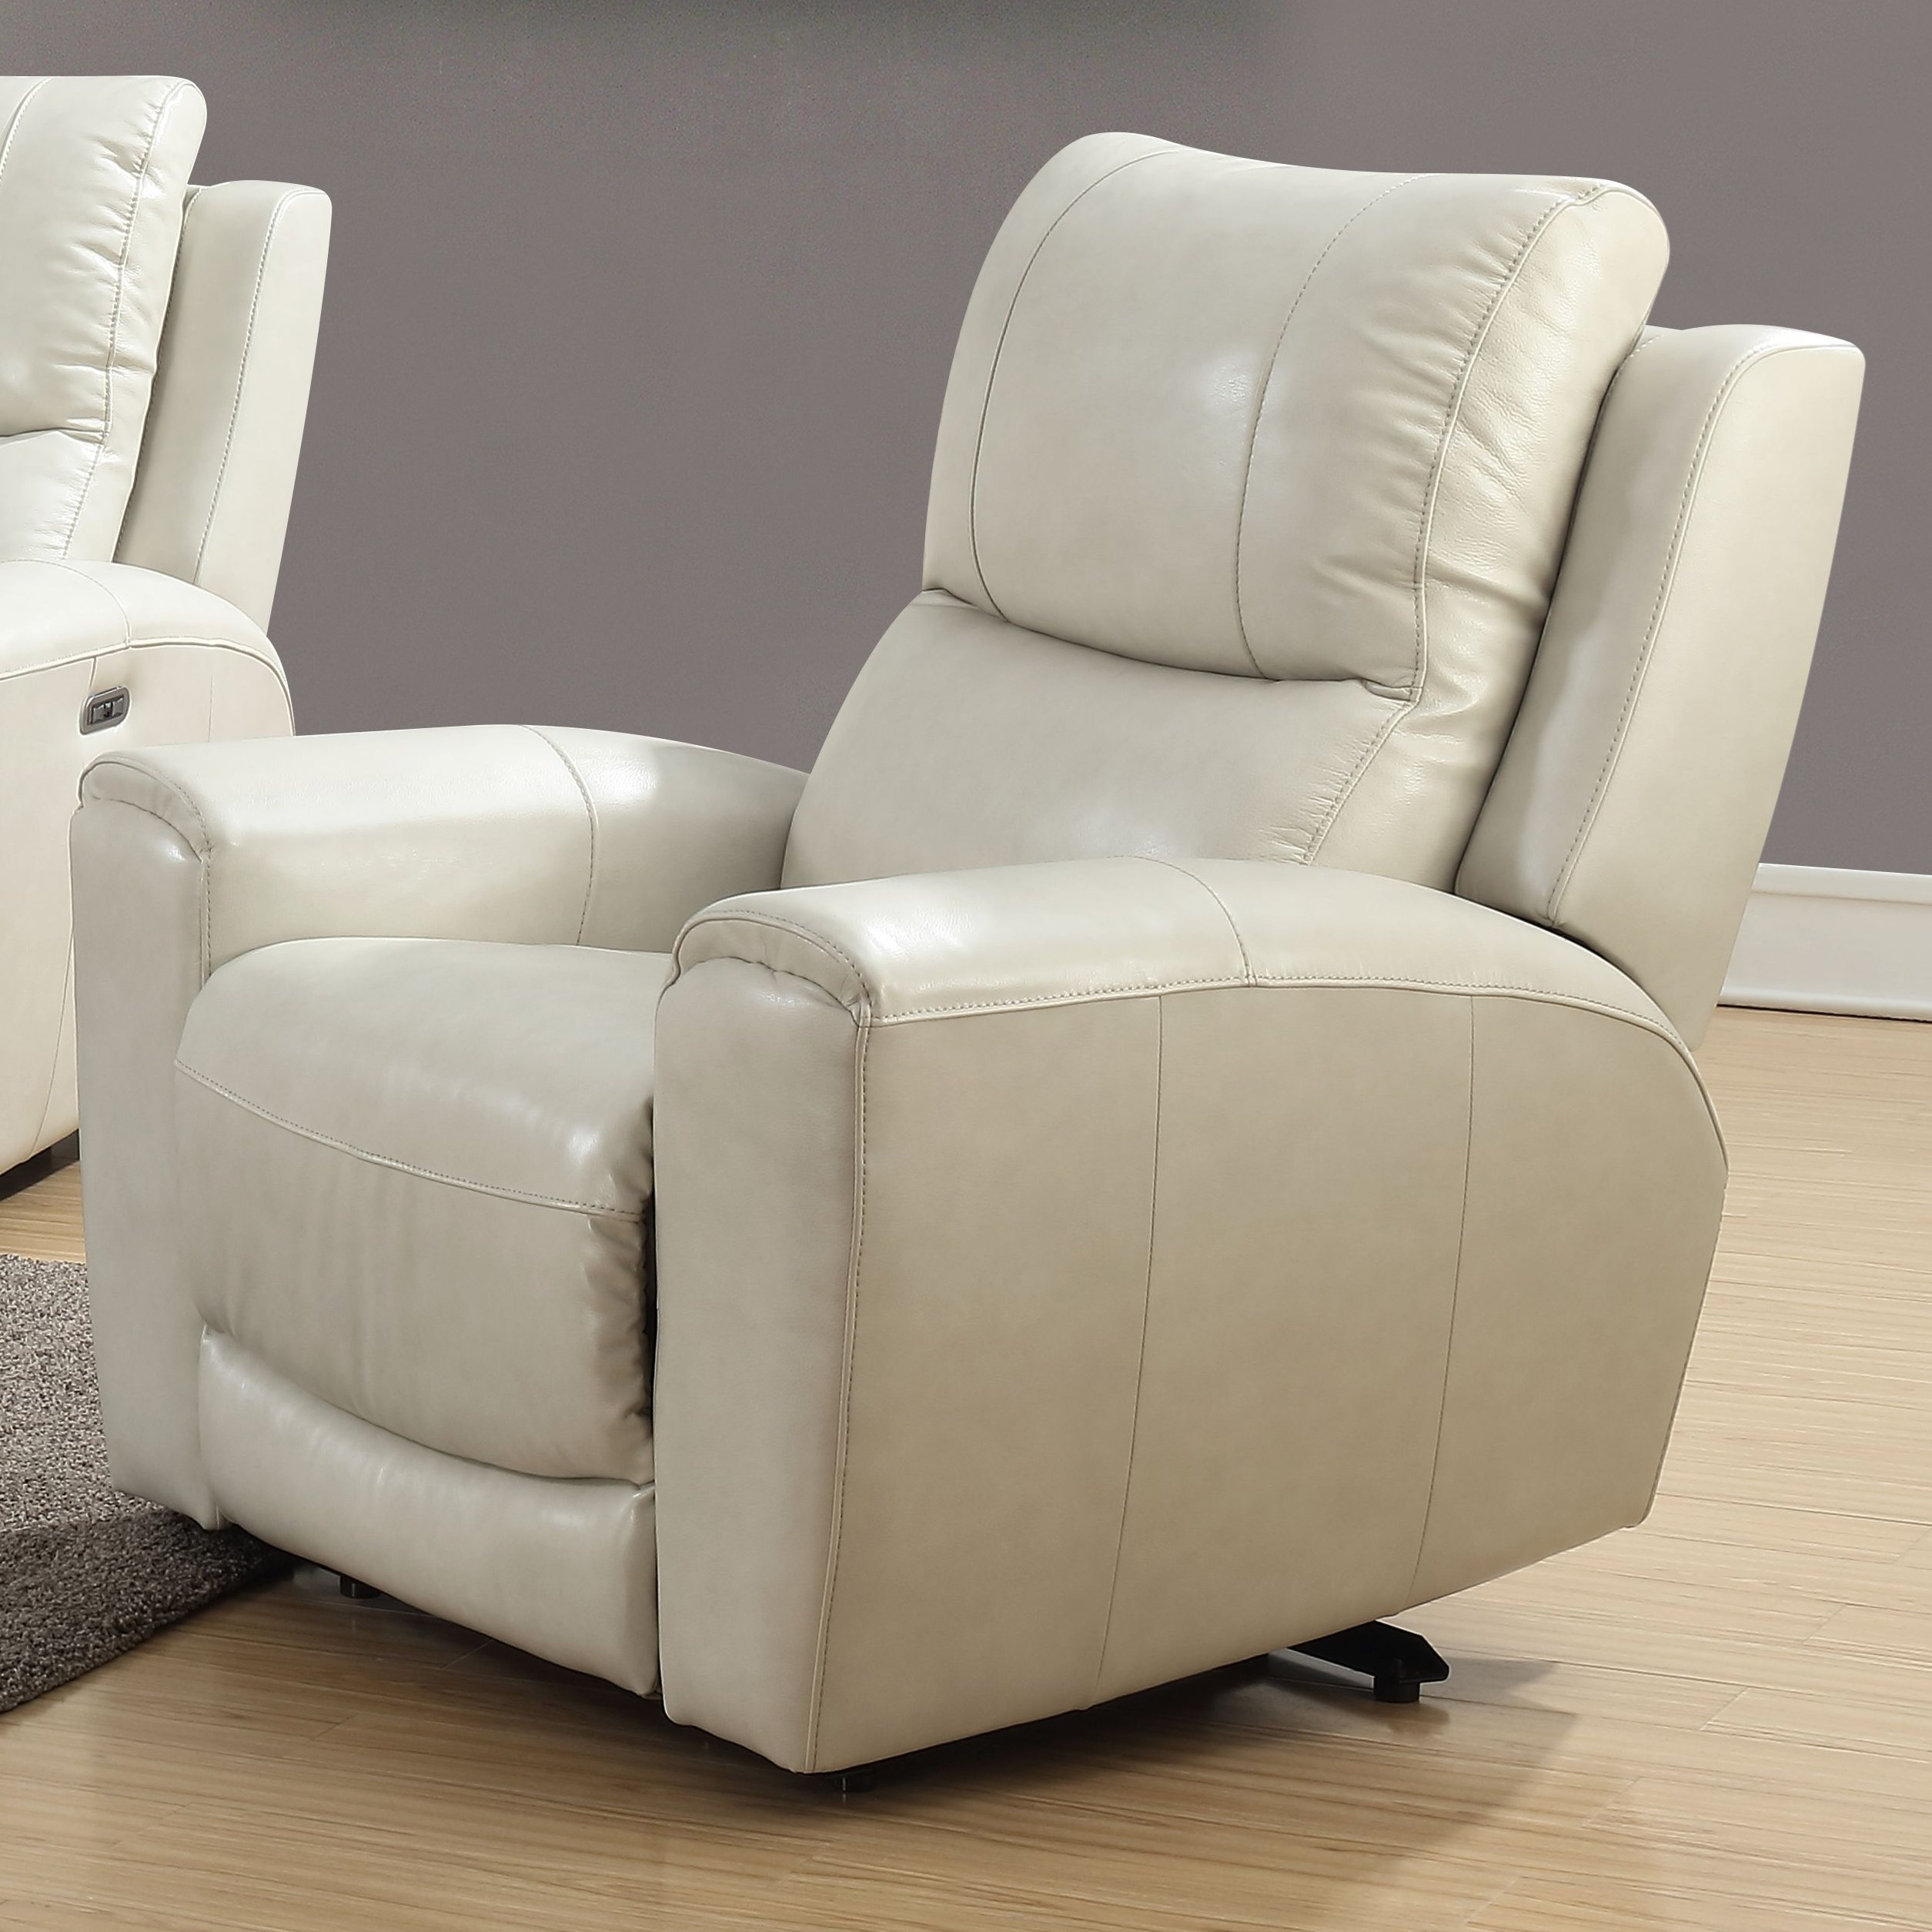 Laurel Power Recliner Chair by Steve Silver at Northeast Factory Direct